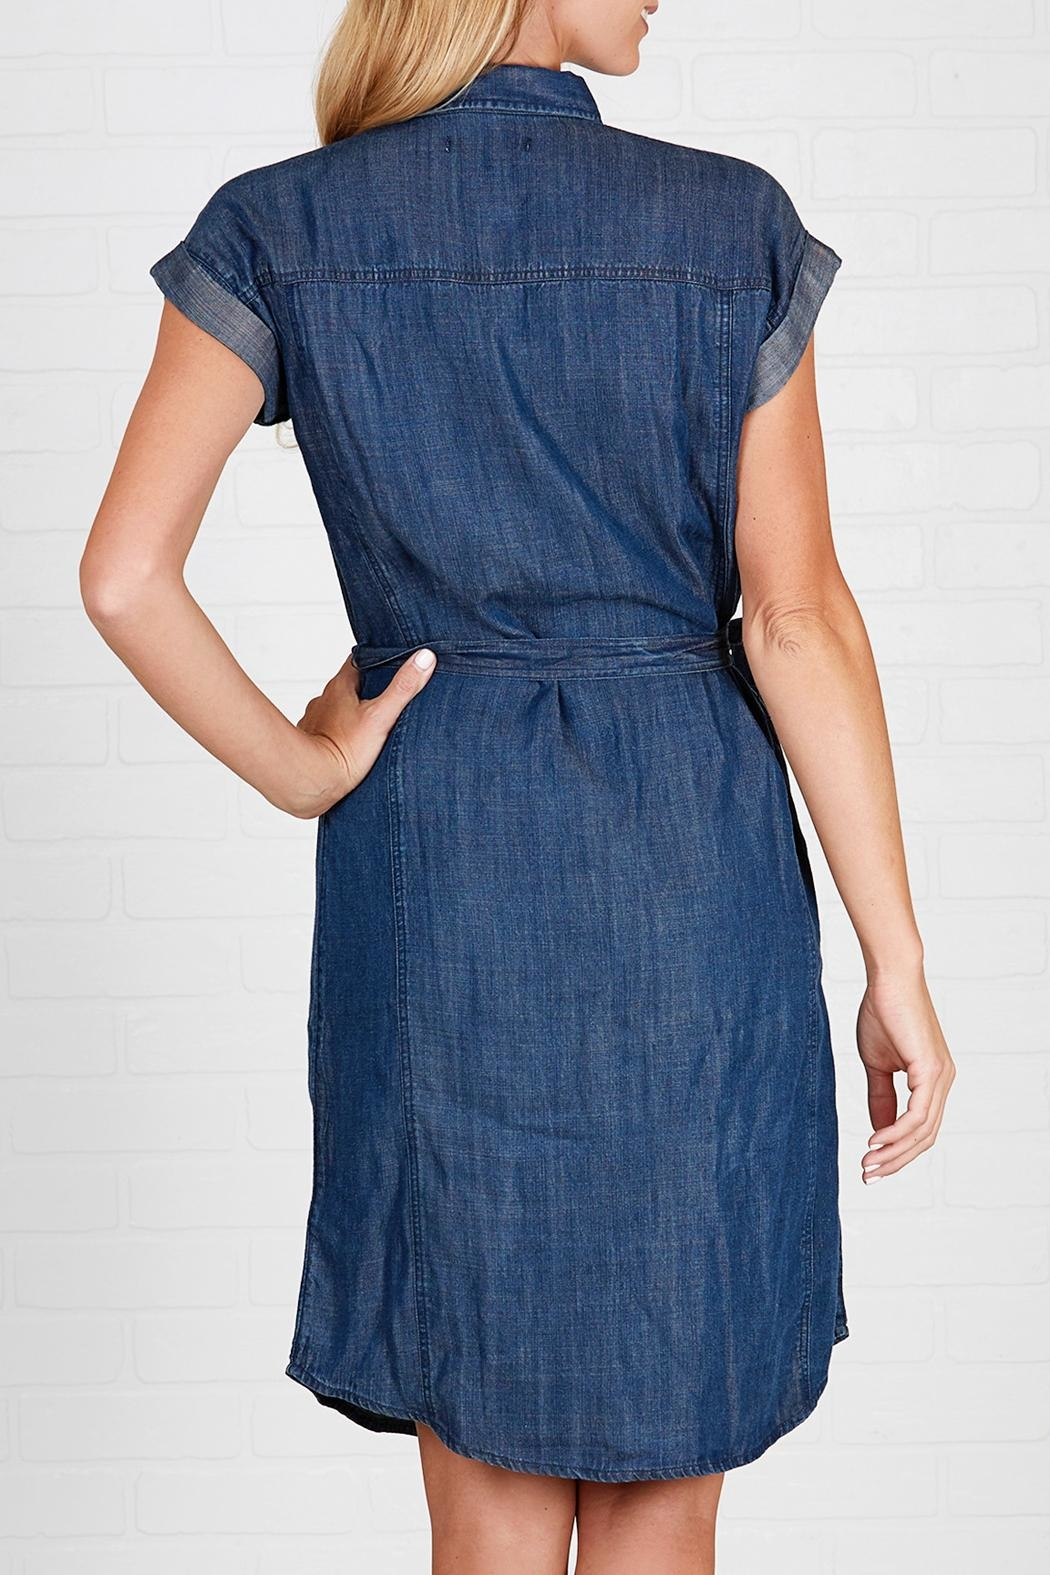 Downeast Basics Country Roads Dress - Front Full Image